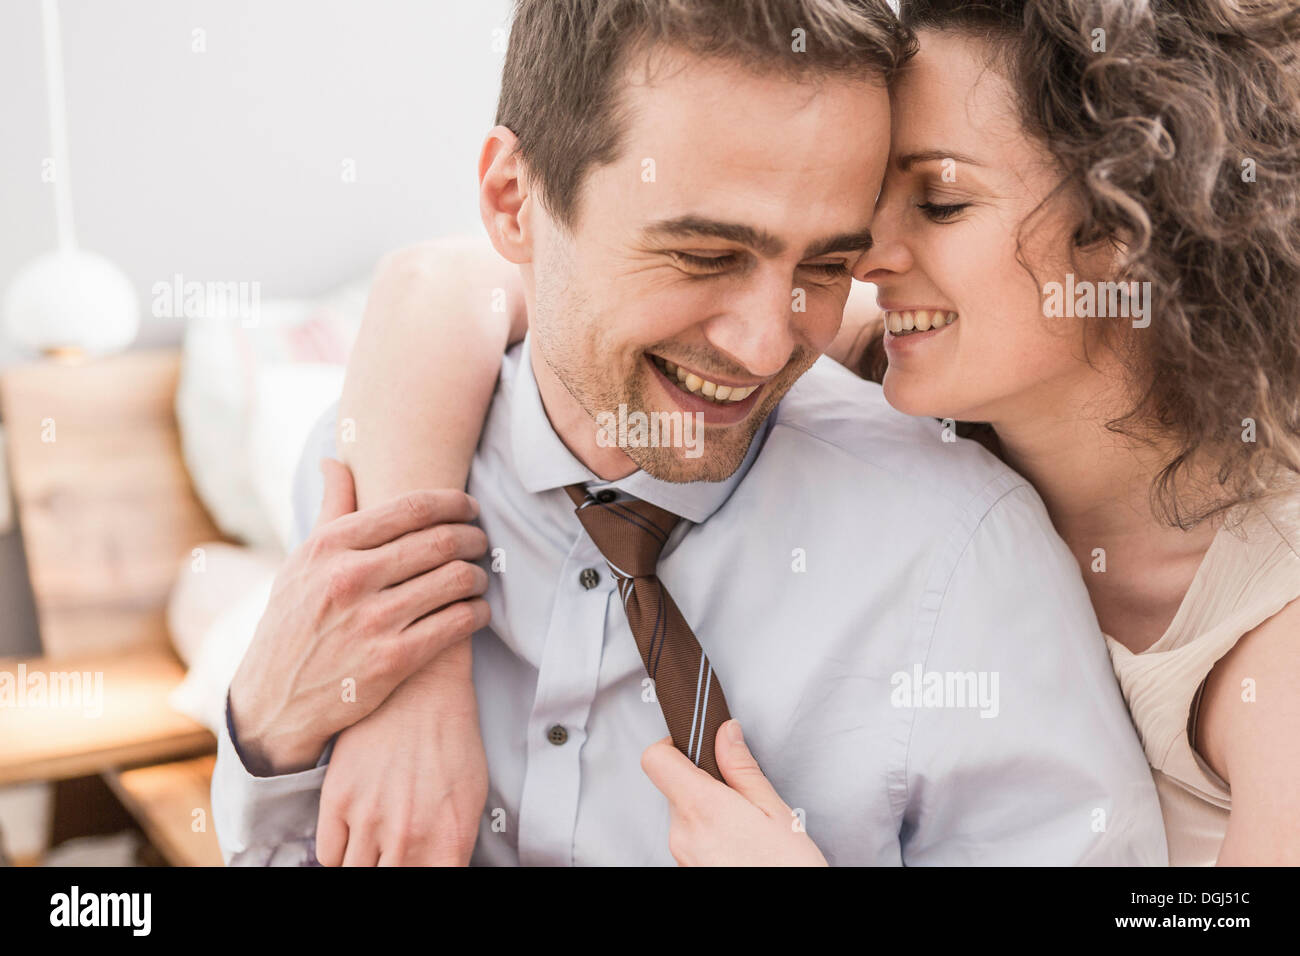 Mid adult couple face to face with arm around, smiling - Stock Image